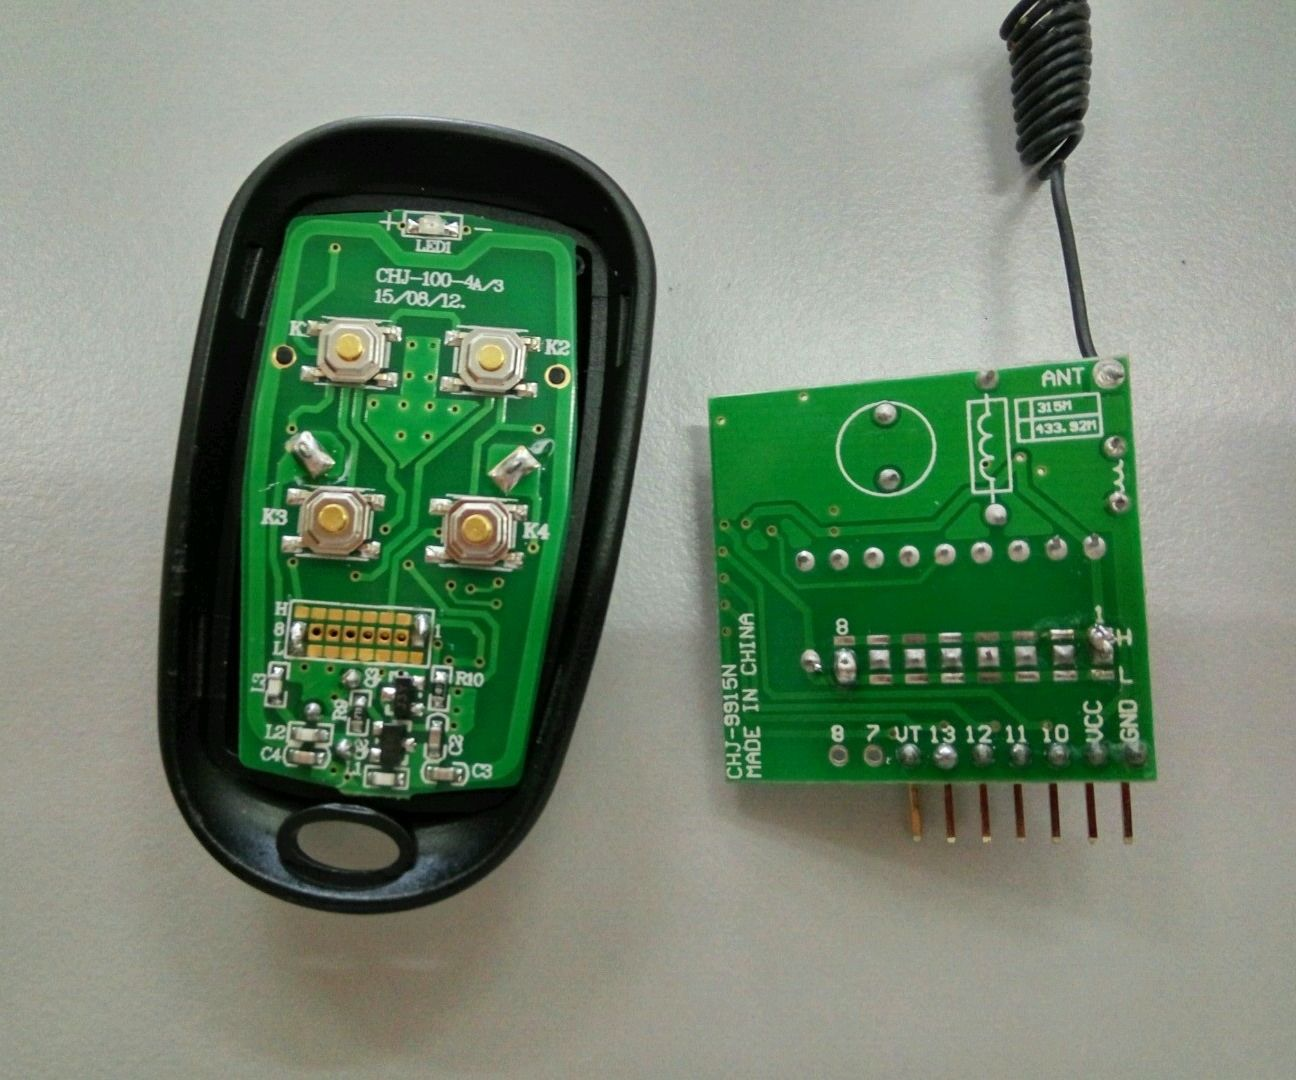 How to set the ID for the RF remote control kit